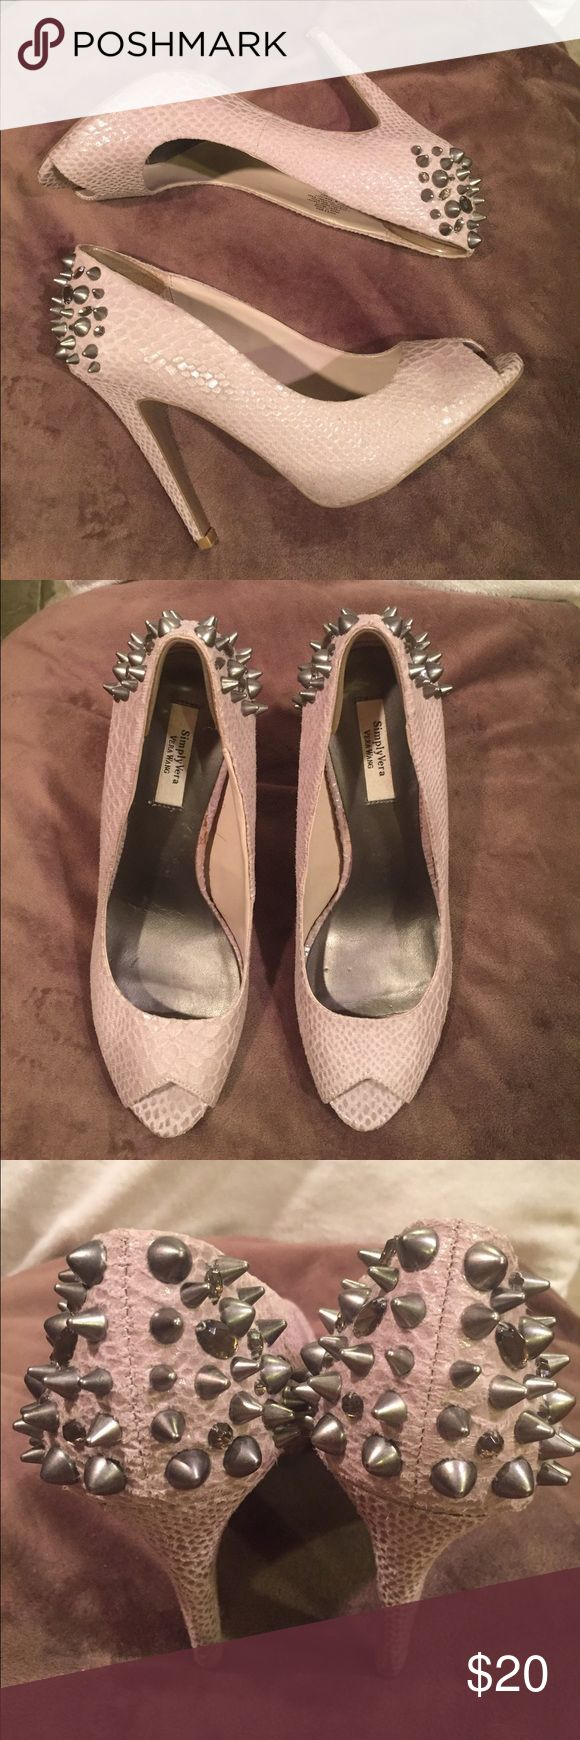 Vera Wang Grey Spiked Heels These heels are funky. Definitely eye catching. Gently used. Very minor signs of usage. Vera Wang Shoes Heels